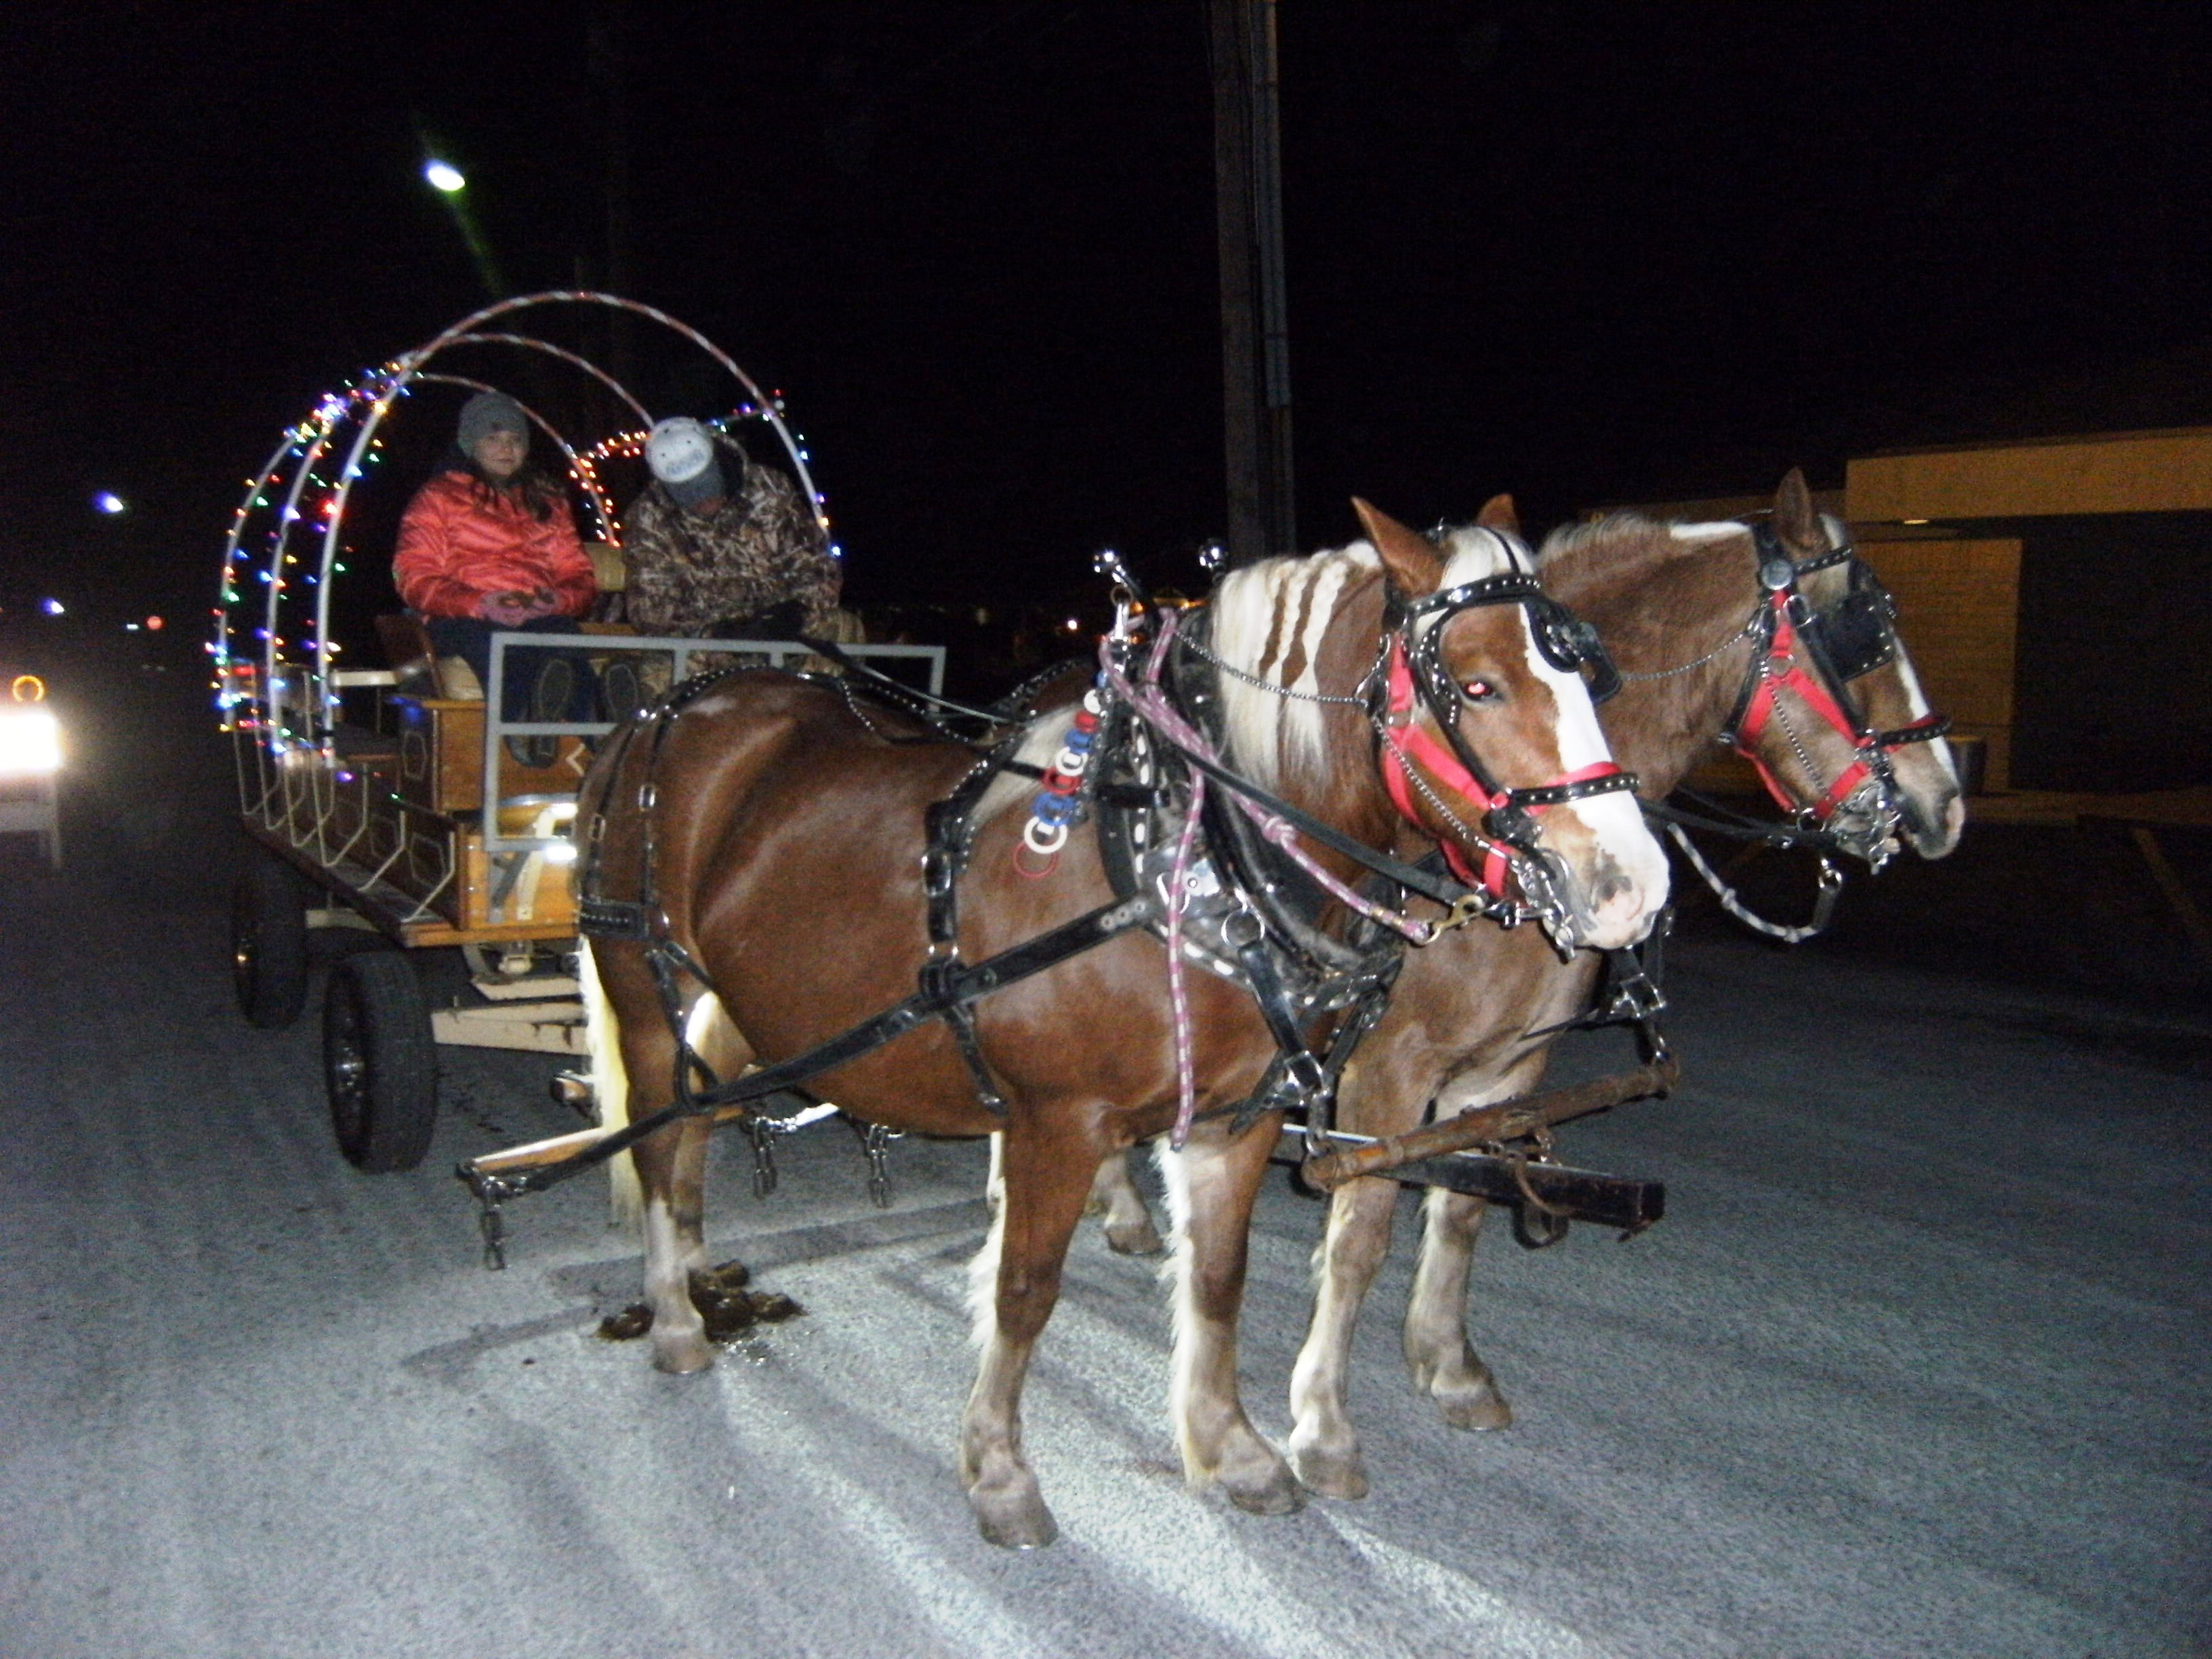 Horse drawn carriage rides provided by Paul Kuberski and Nelson Rule at the Murphy-Wall State Bank and Trust Company's 2017 Old Fashioned Christmas event